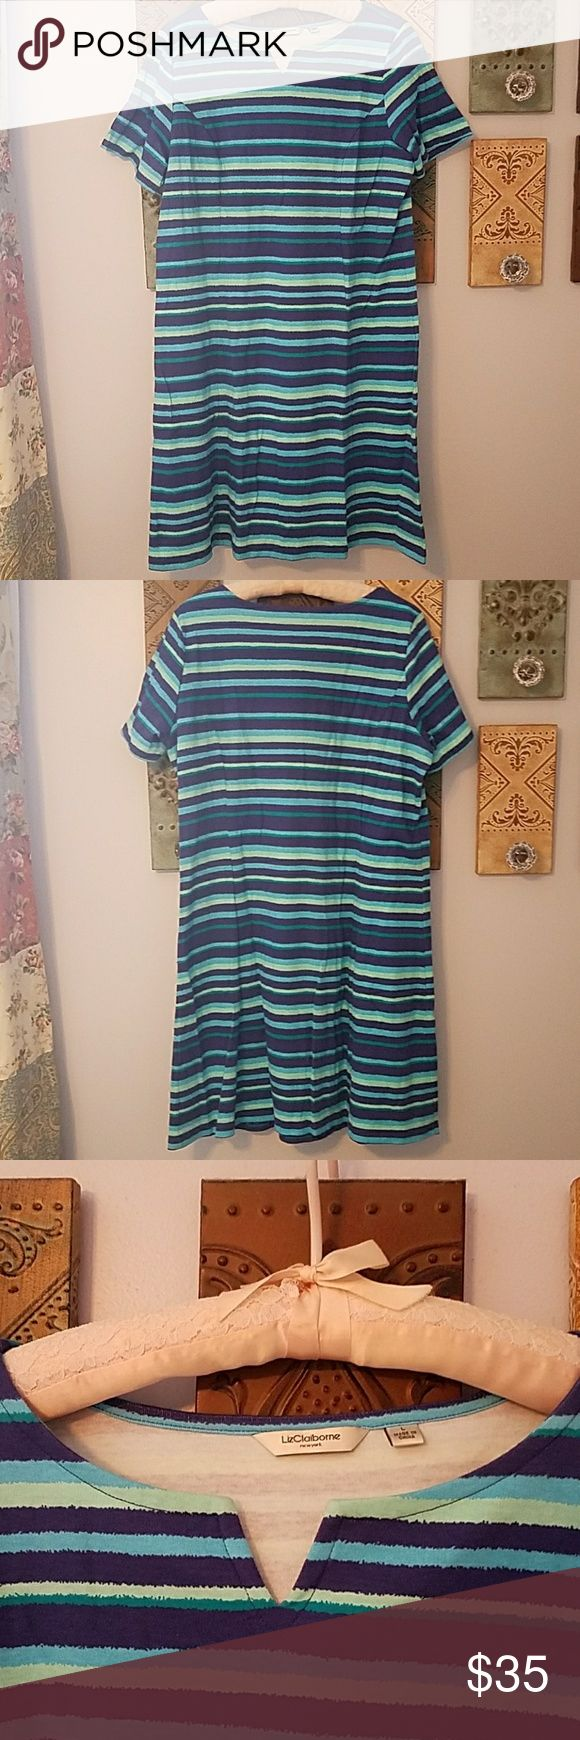 "Liz Clairborne NY Striped Dress Fun and comfy t-shirt dress with figure flattering seaming detail and notched neckline.  Can be dressed up or dressed down with wedges or heels or even a cute pair of sneakers. I bought it from QVC and its unavailable now.  Worn once. Really!  Bust 23"" waist 21"",  hip 23"" length 37"".  100% cotton. Liz Claiborne Dresses Midi"